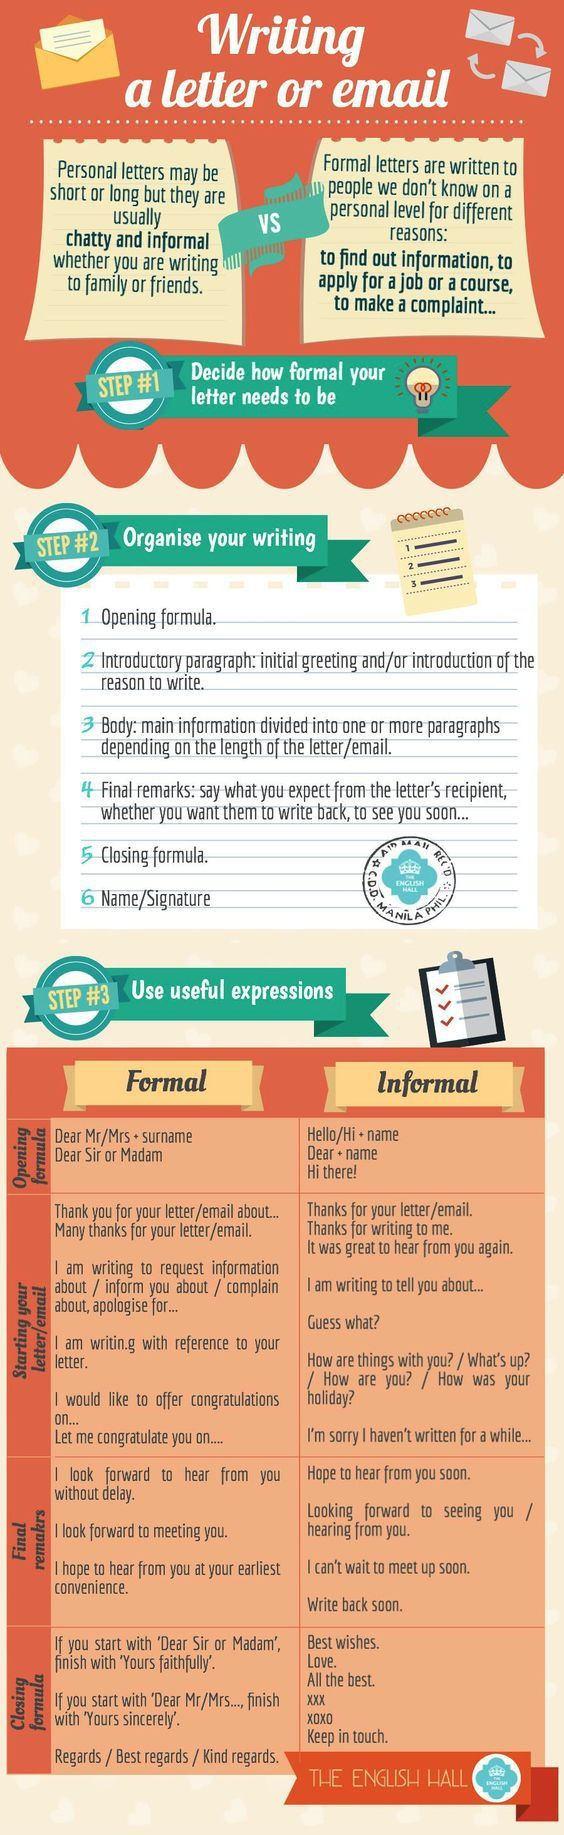 FormalInformalEnglish Formal Writing Expressions Formal